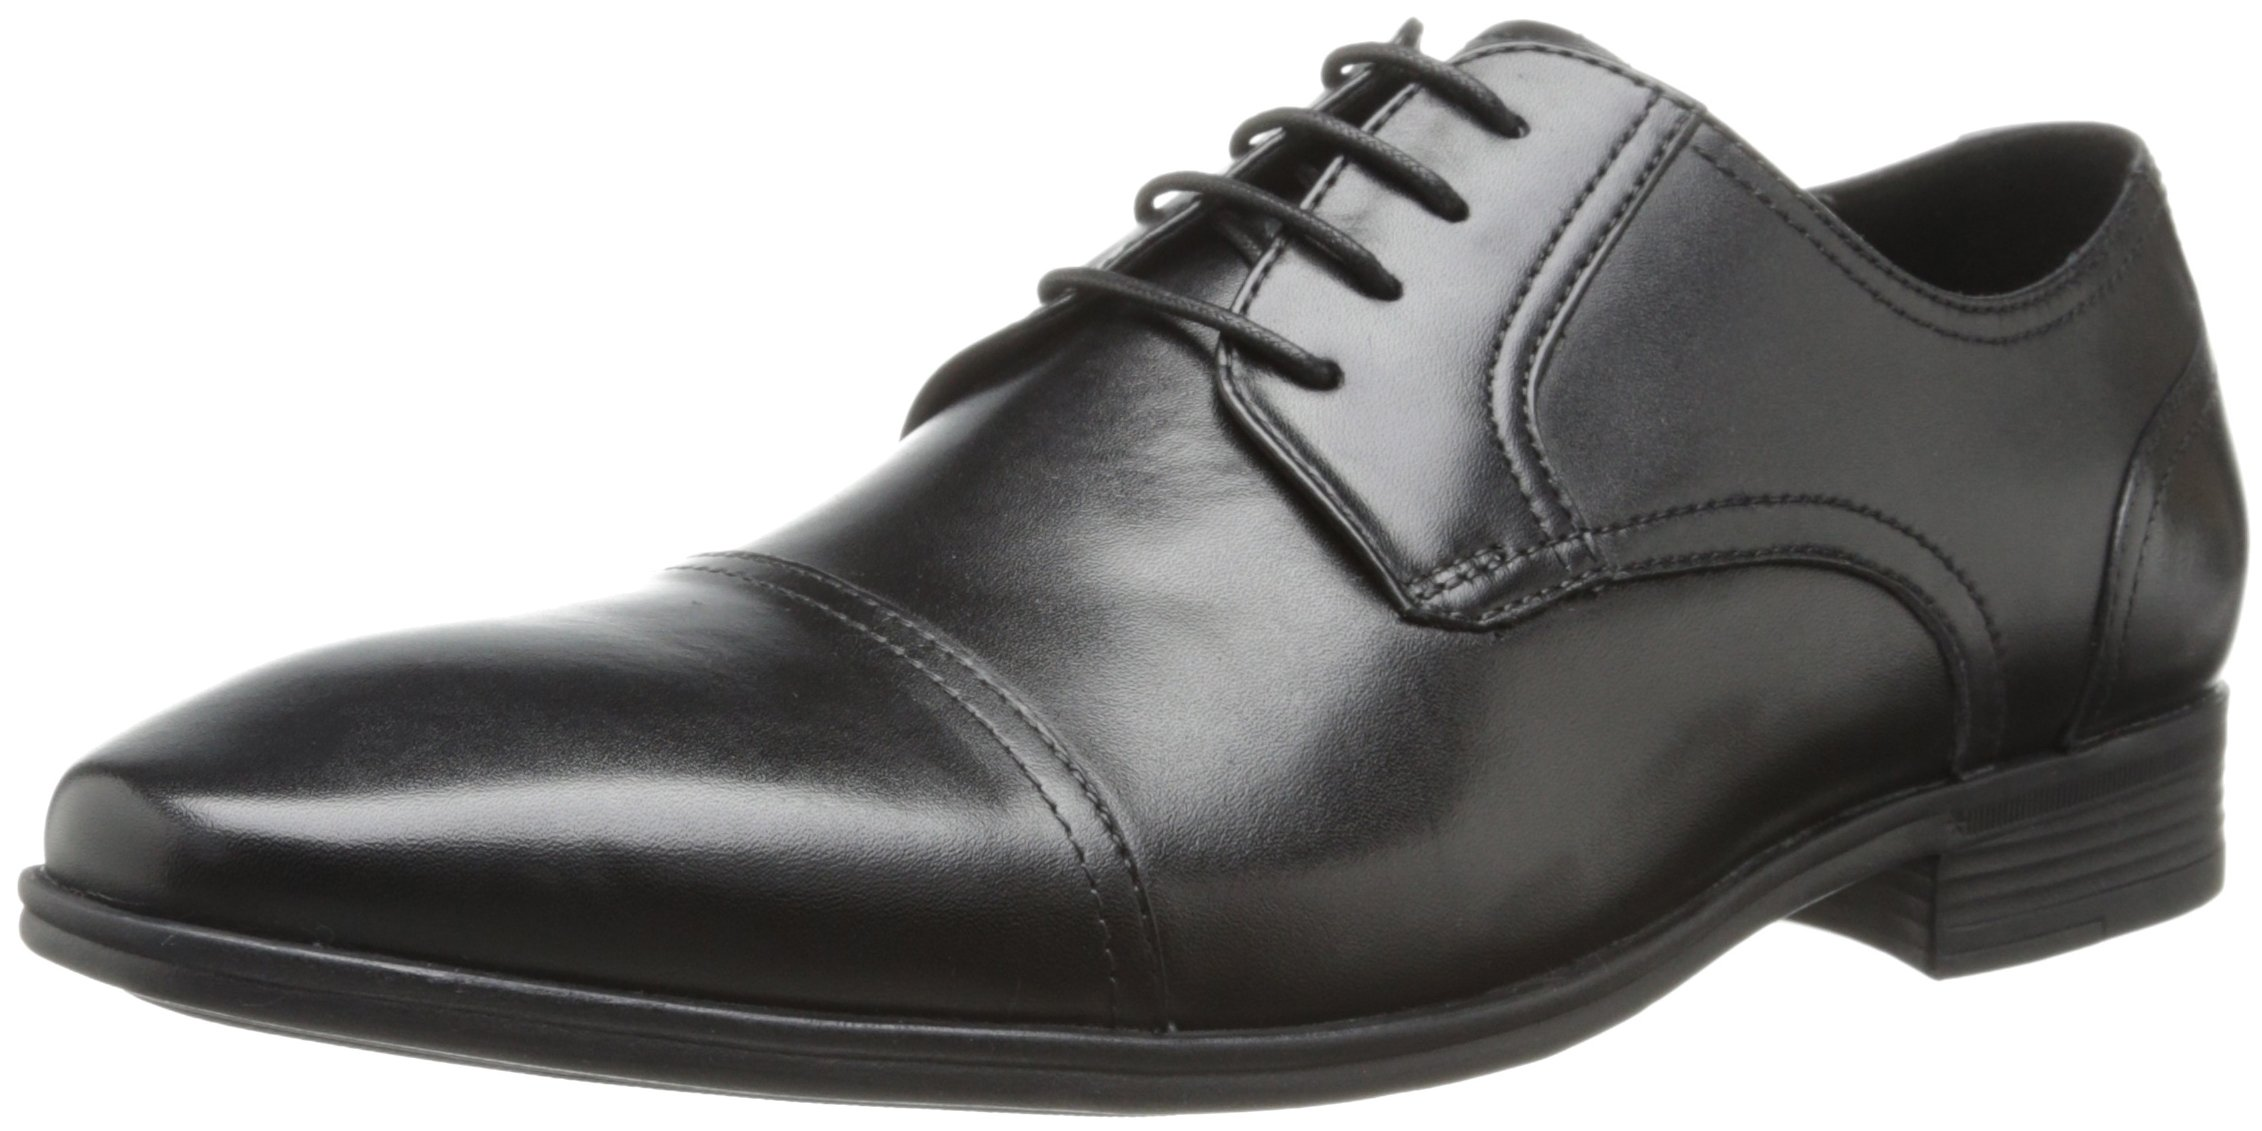 Kenneth Cole REACTION Men's In A Minute Oxford